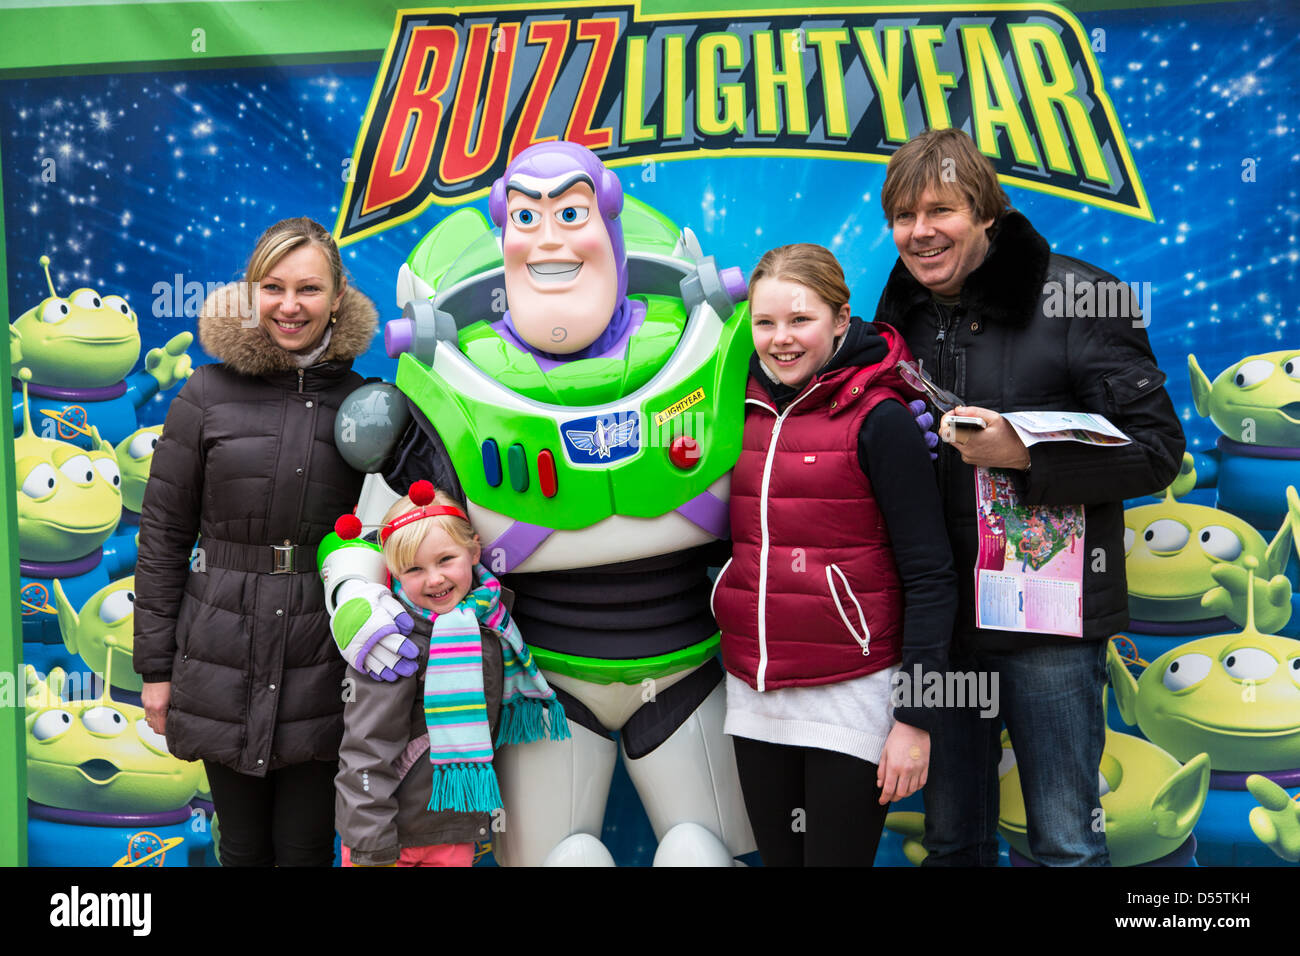 Buzz lightyear character meet and greet disneyland paris stock buzz lightyear character meet and greet disneyland paris m4hsunfo